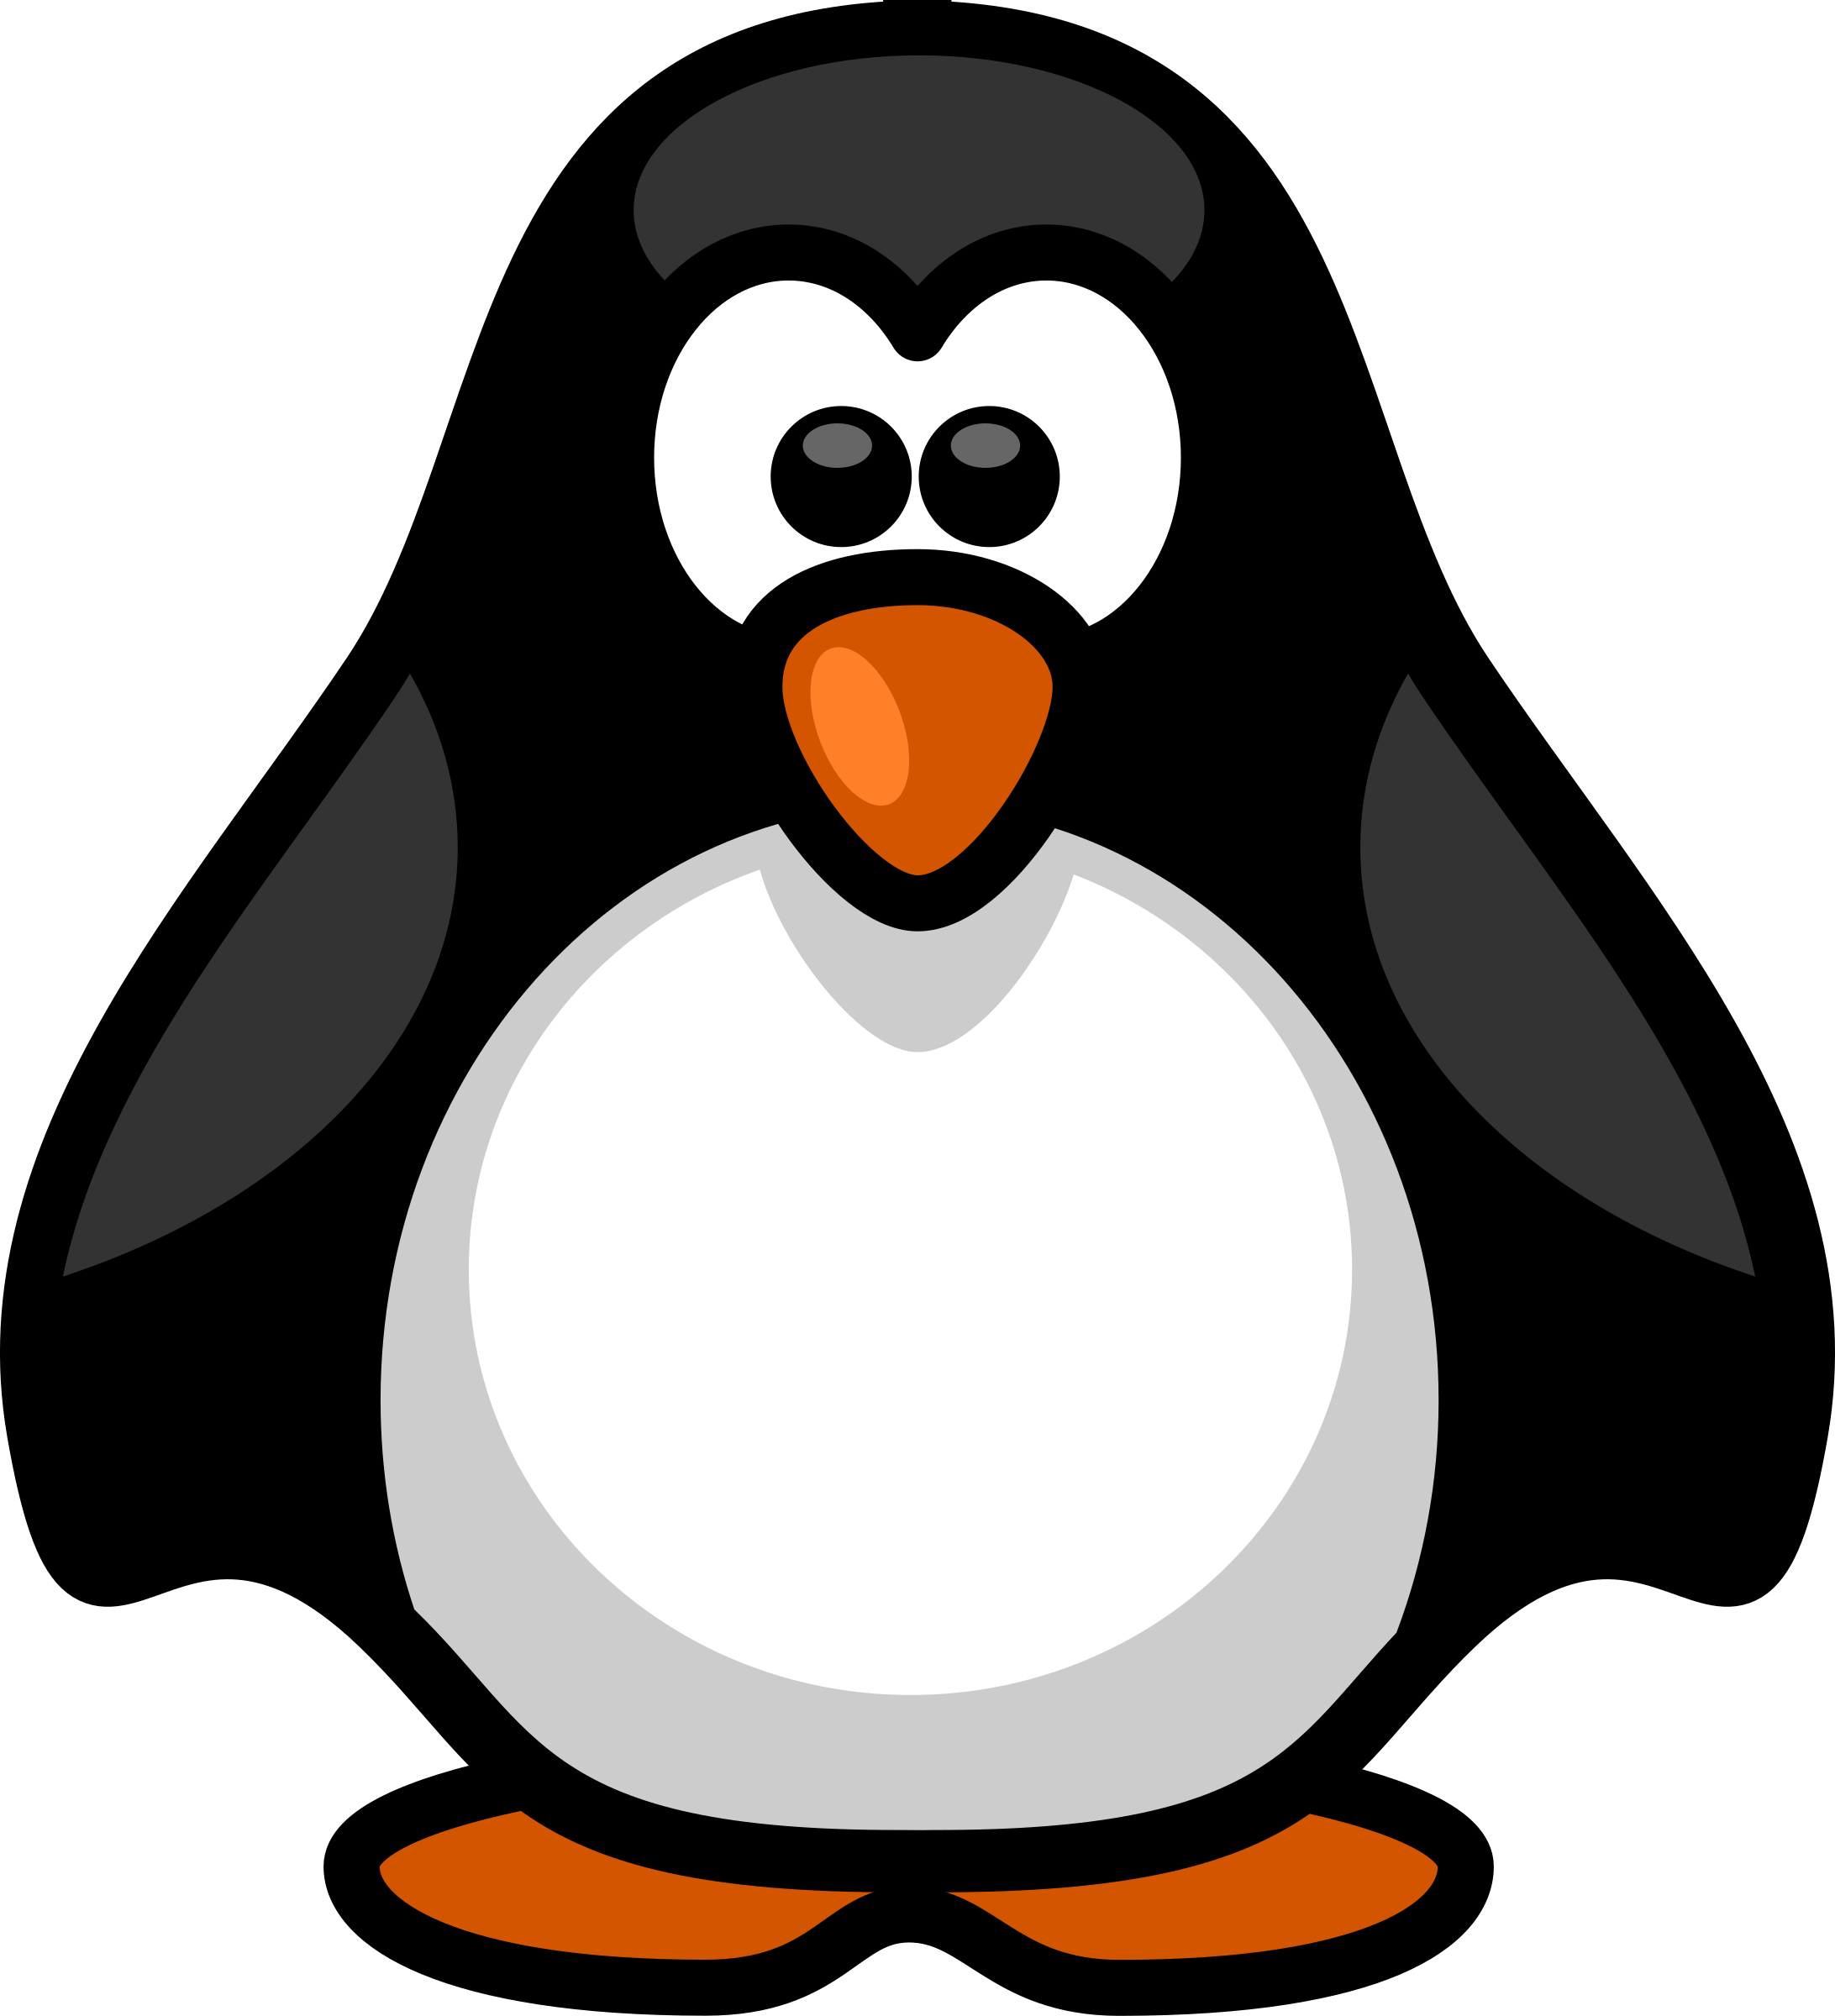 Penguin clipart animated, Penguin animated Transparent FREE.